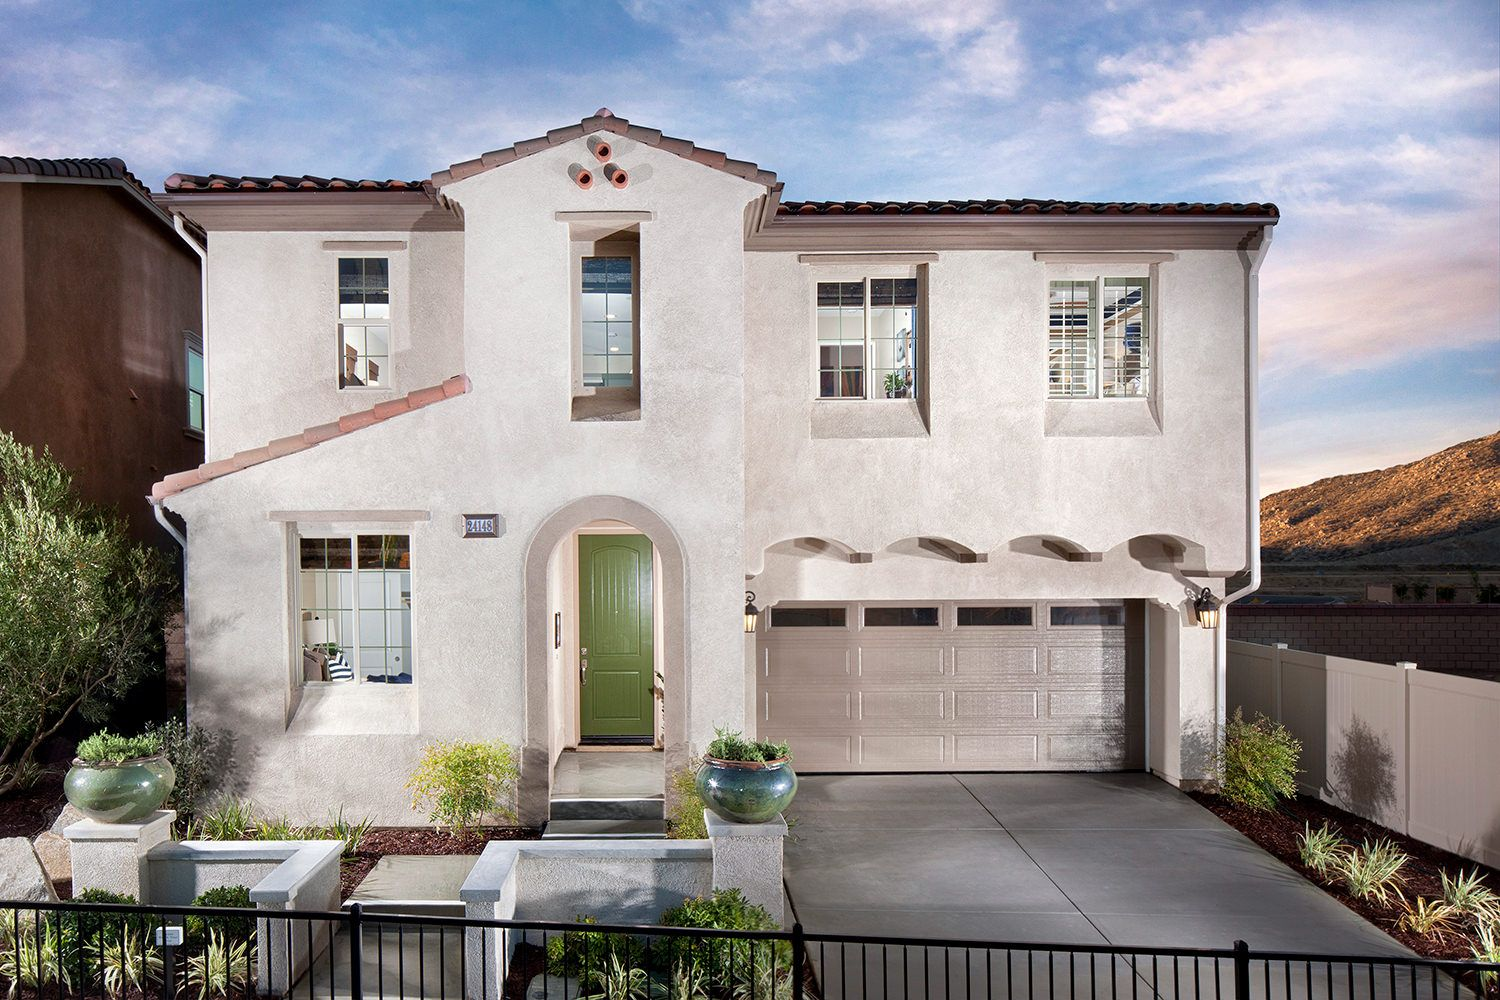 Single Family for Sale at Overlook - Plan 3 24142 Dahlia Way Lake Elsinore, California 92532 United States